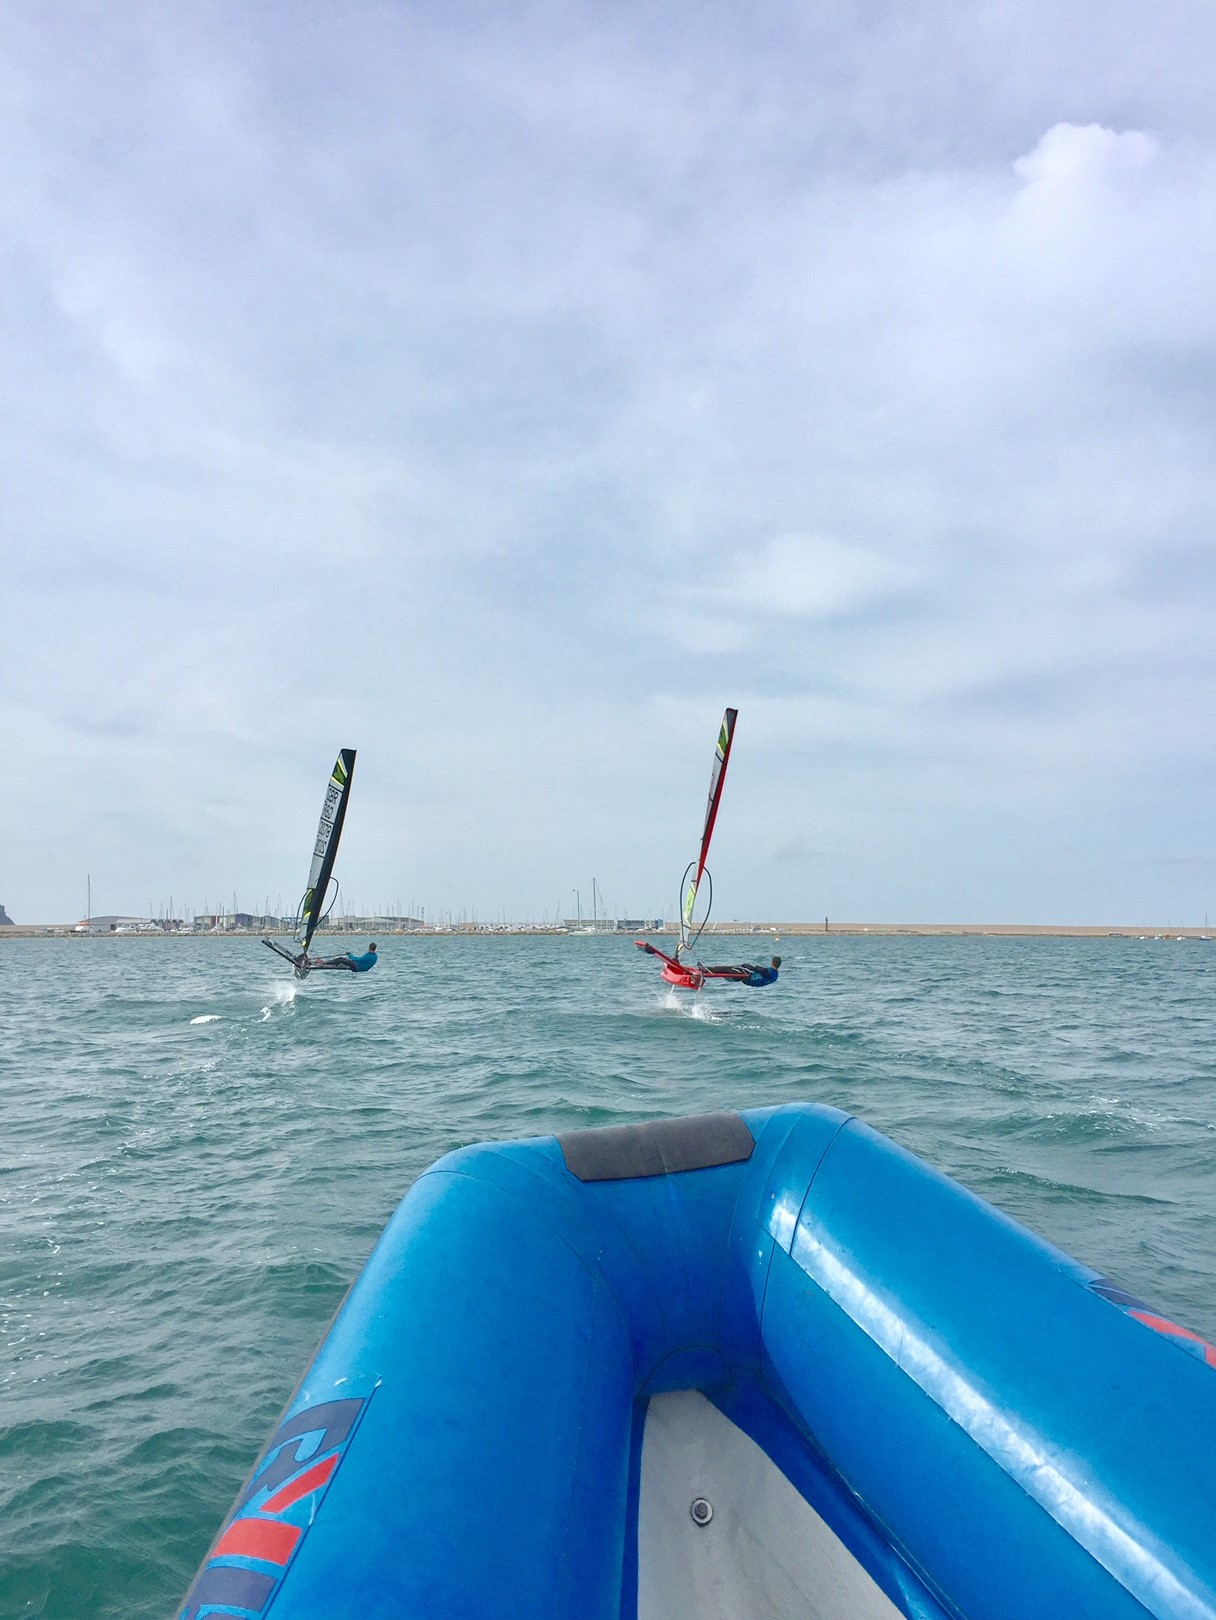 It was awesome to finally line up against another Waszp, race around Portland and then let the lads have a go at their first foiling experience.